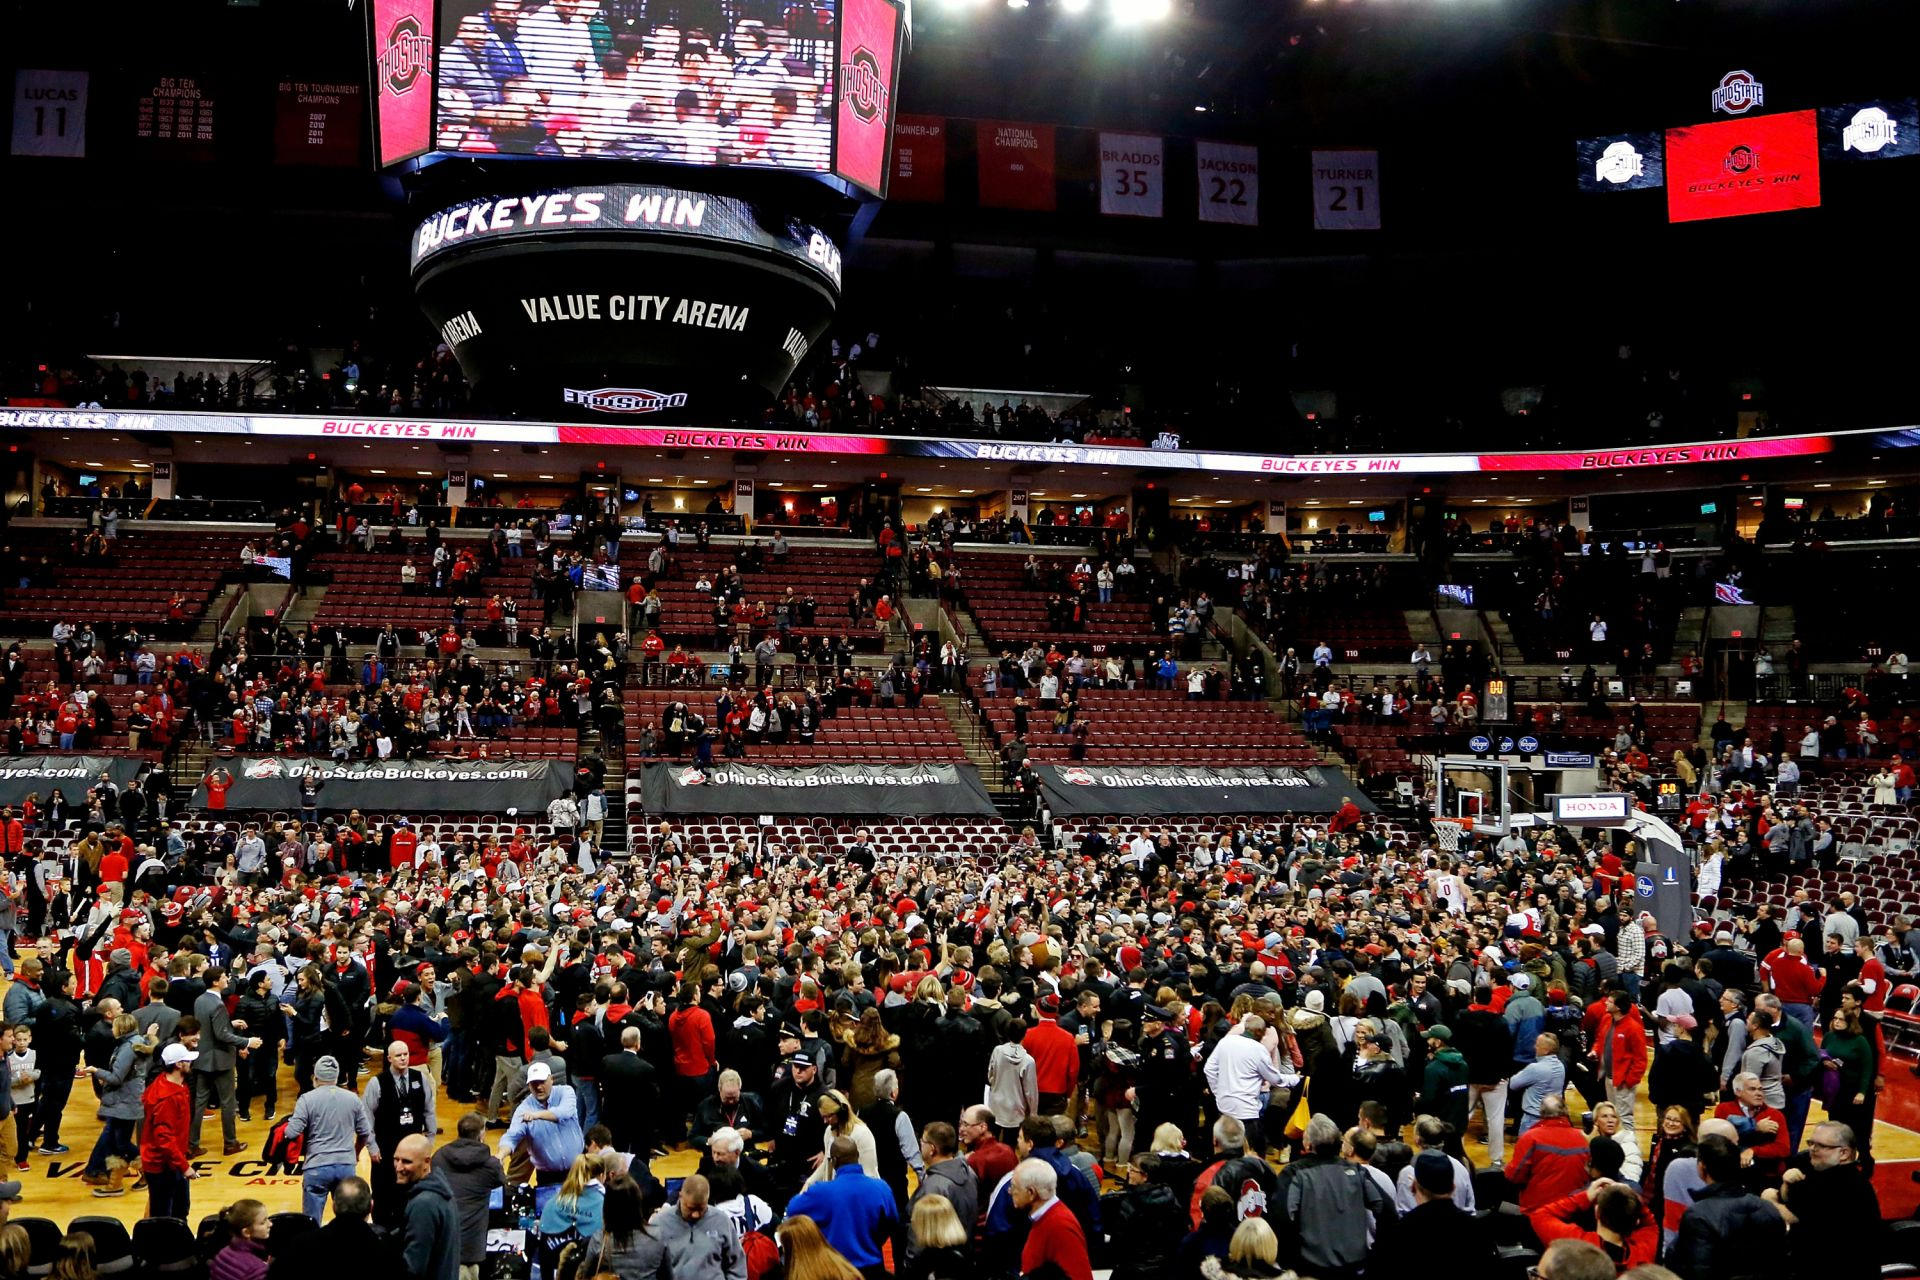 Ohio State plays Michigan State at the Schottenstein Center on January 7, 2018 in Columbus, Ohio. Ohio State defeated Michigan State 80-64.